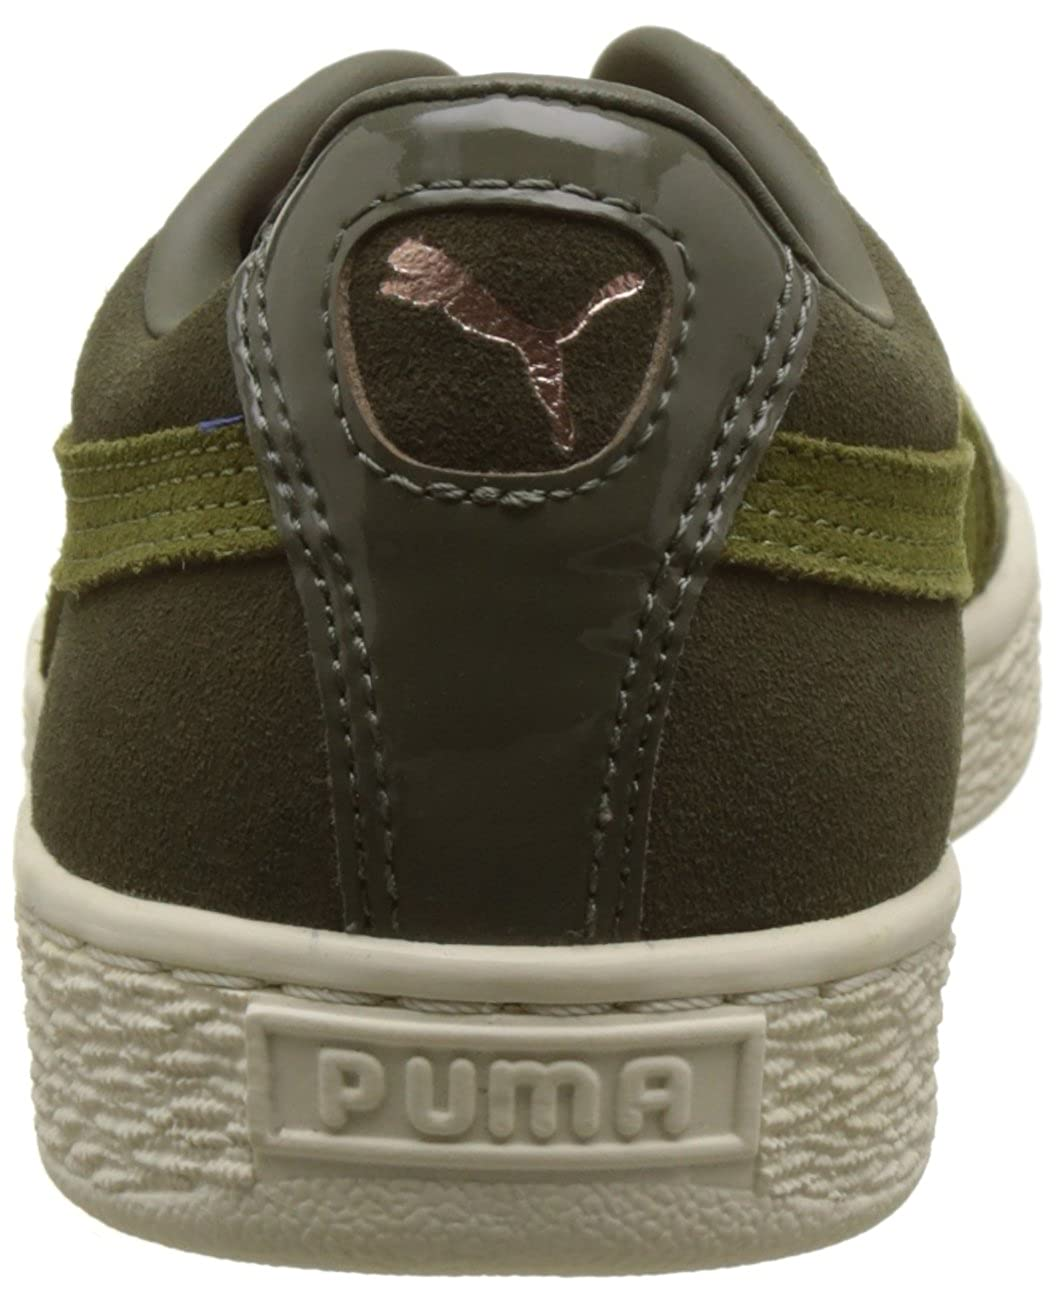 1aca29654cf65a Puma Women s s Suede XL Lace Vr Trainers Black  Amazon.co.uk  Shoes   Bags